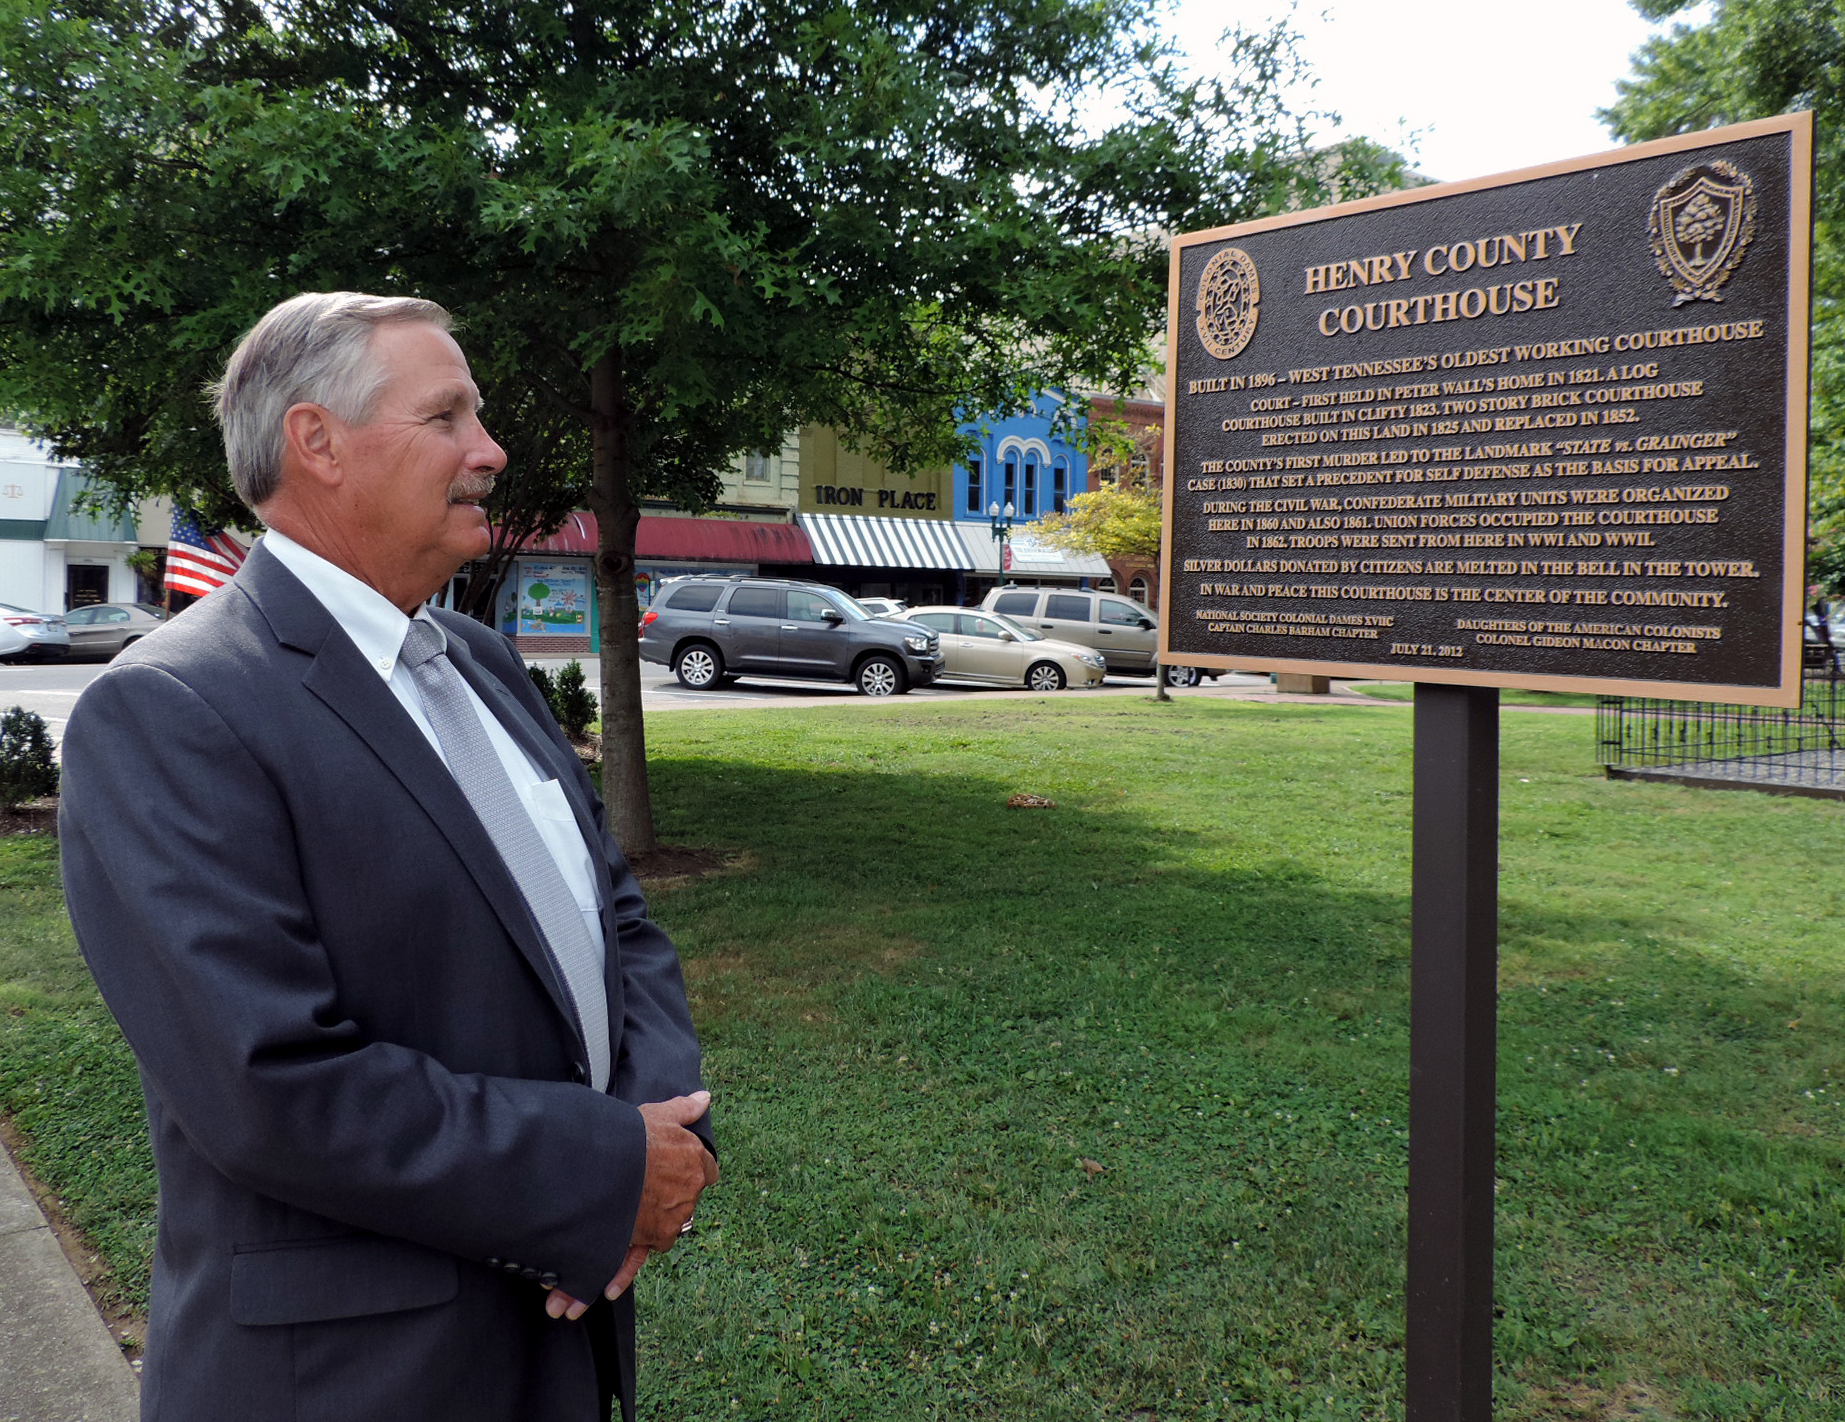 Henry County History – Official Site of Henry County TN